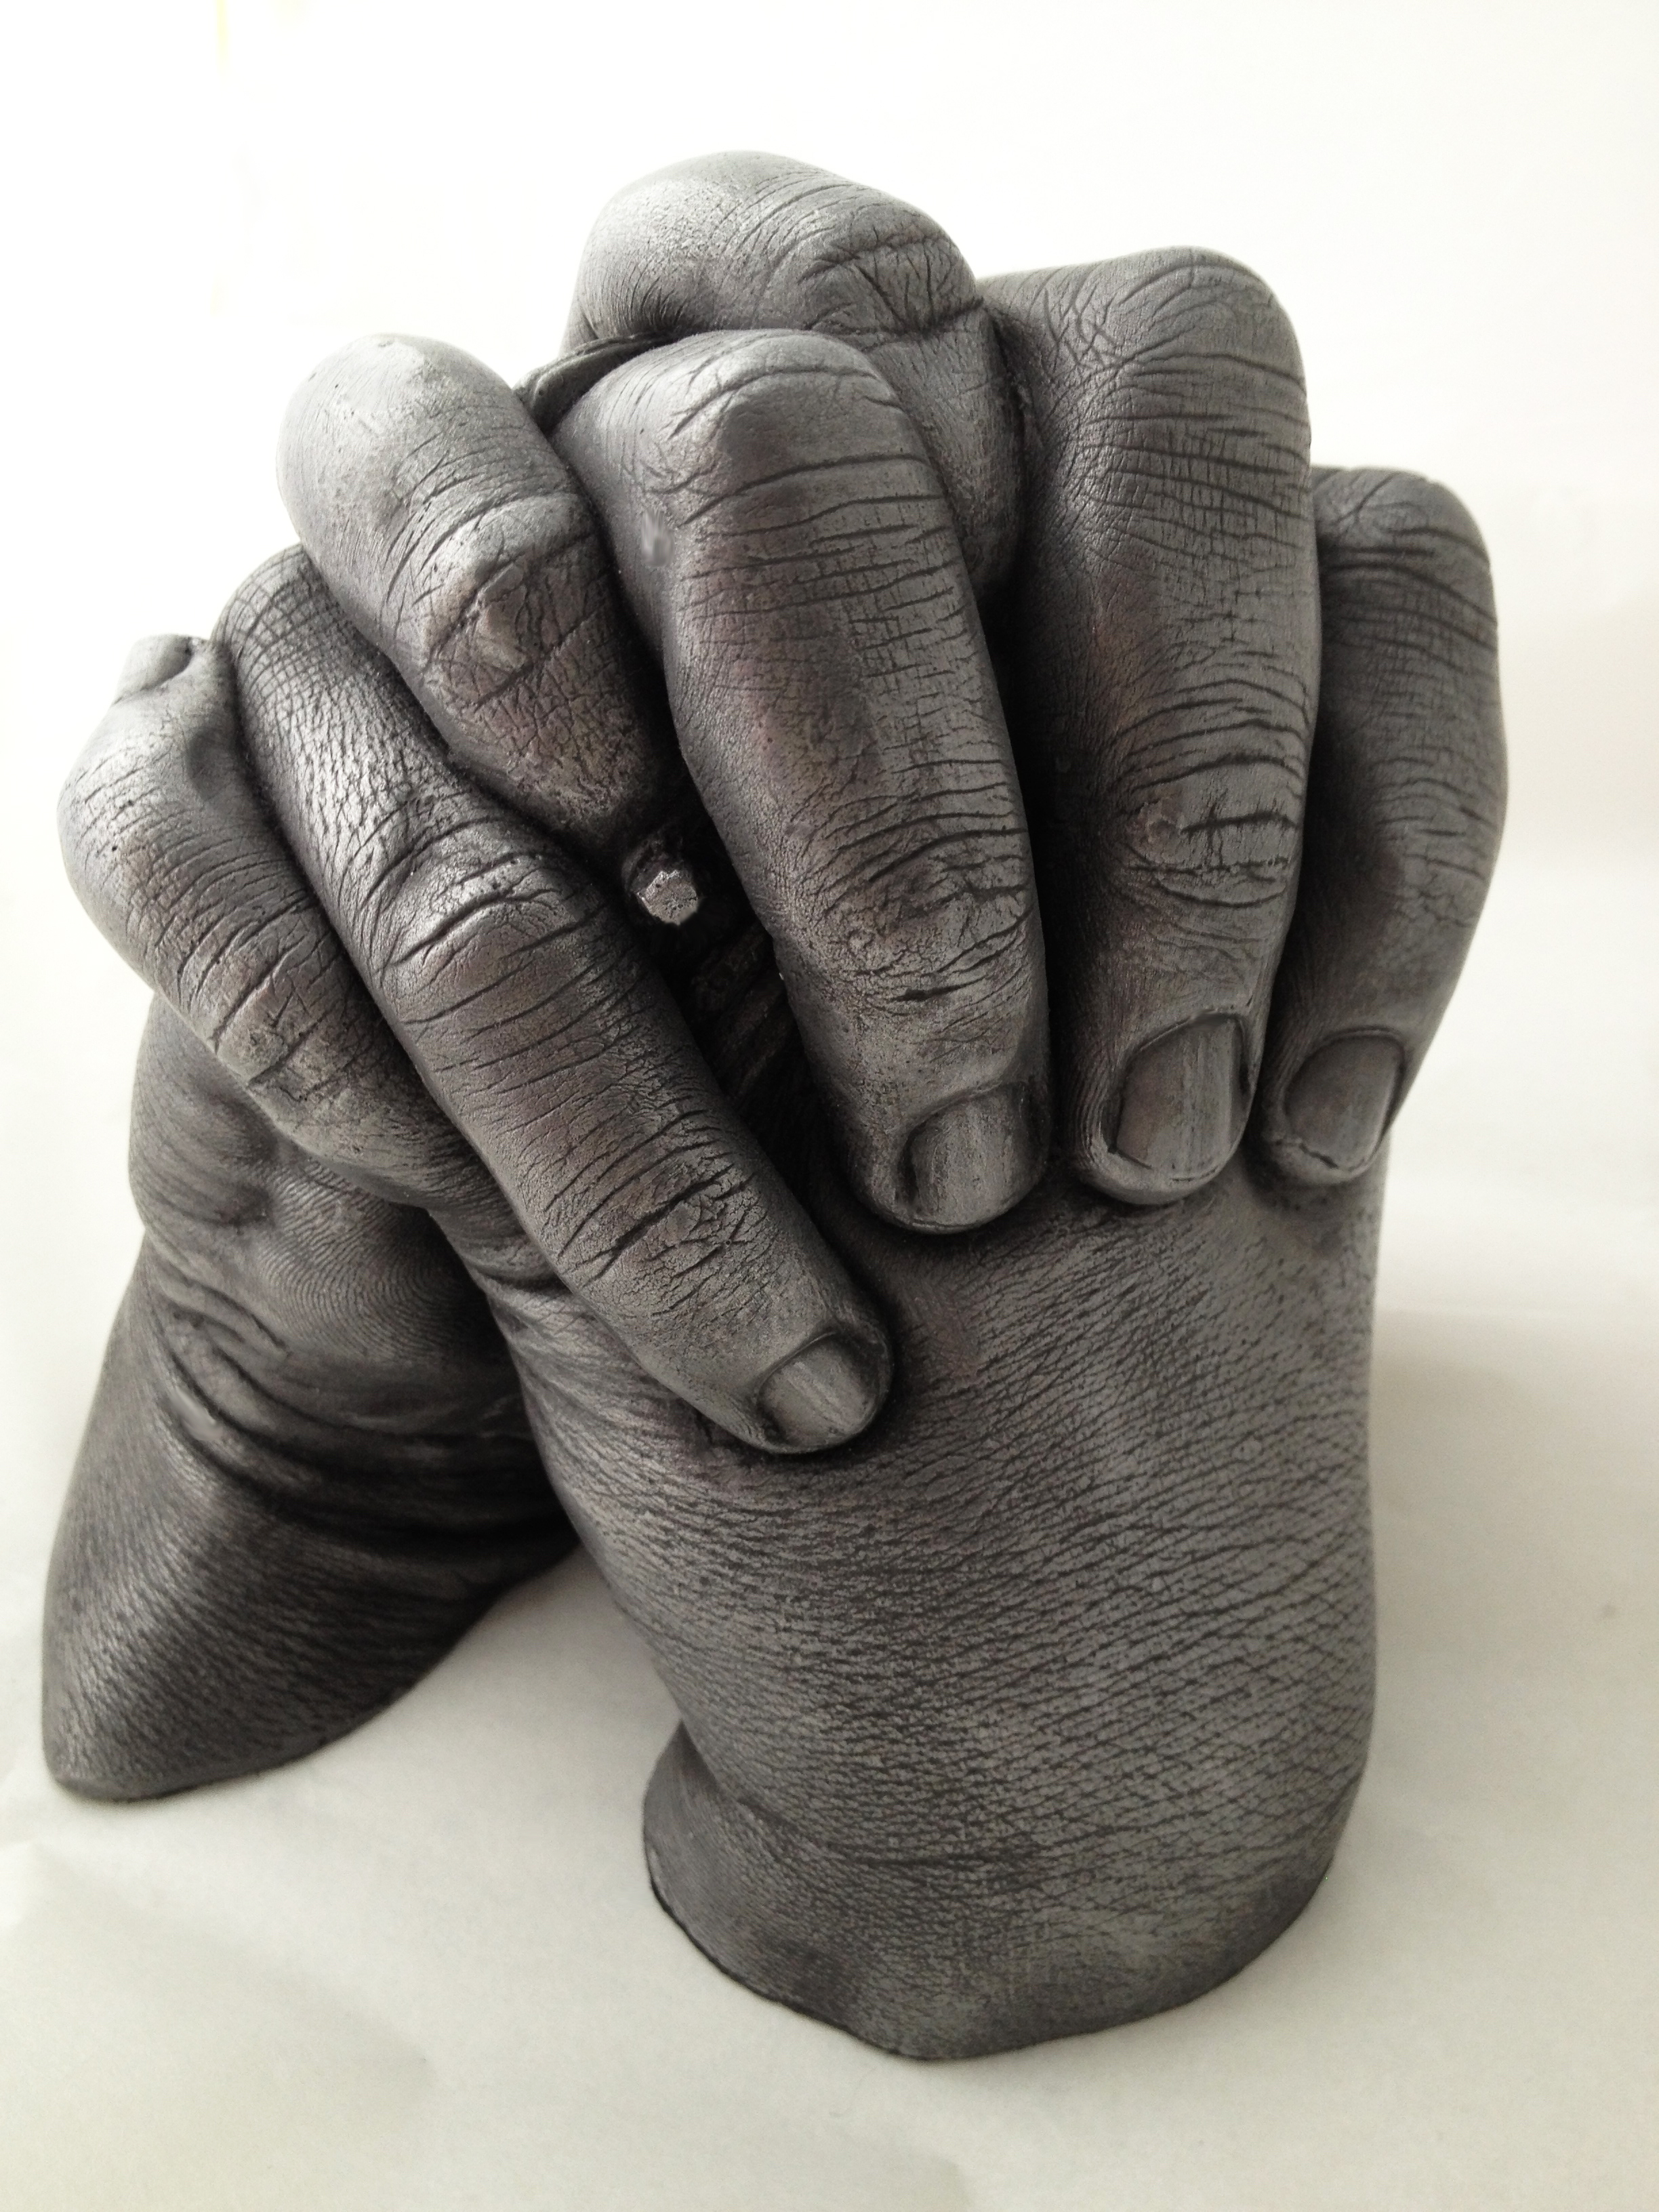 cast aluminium couple hands.jpg